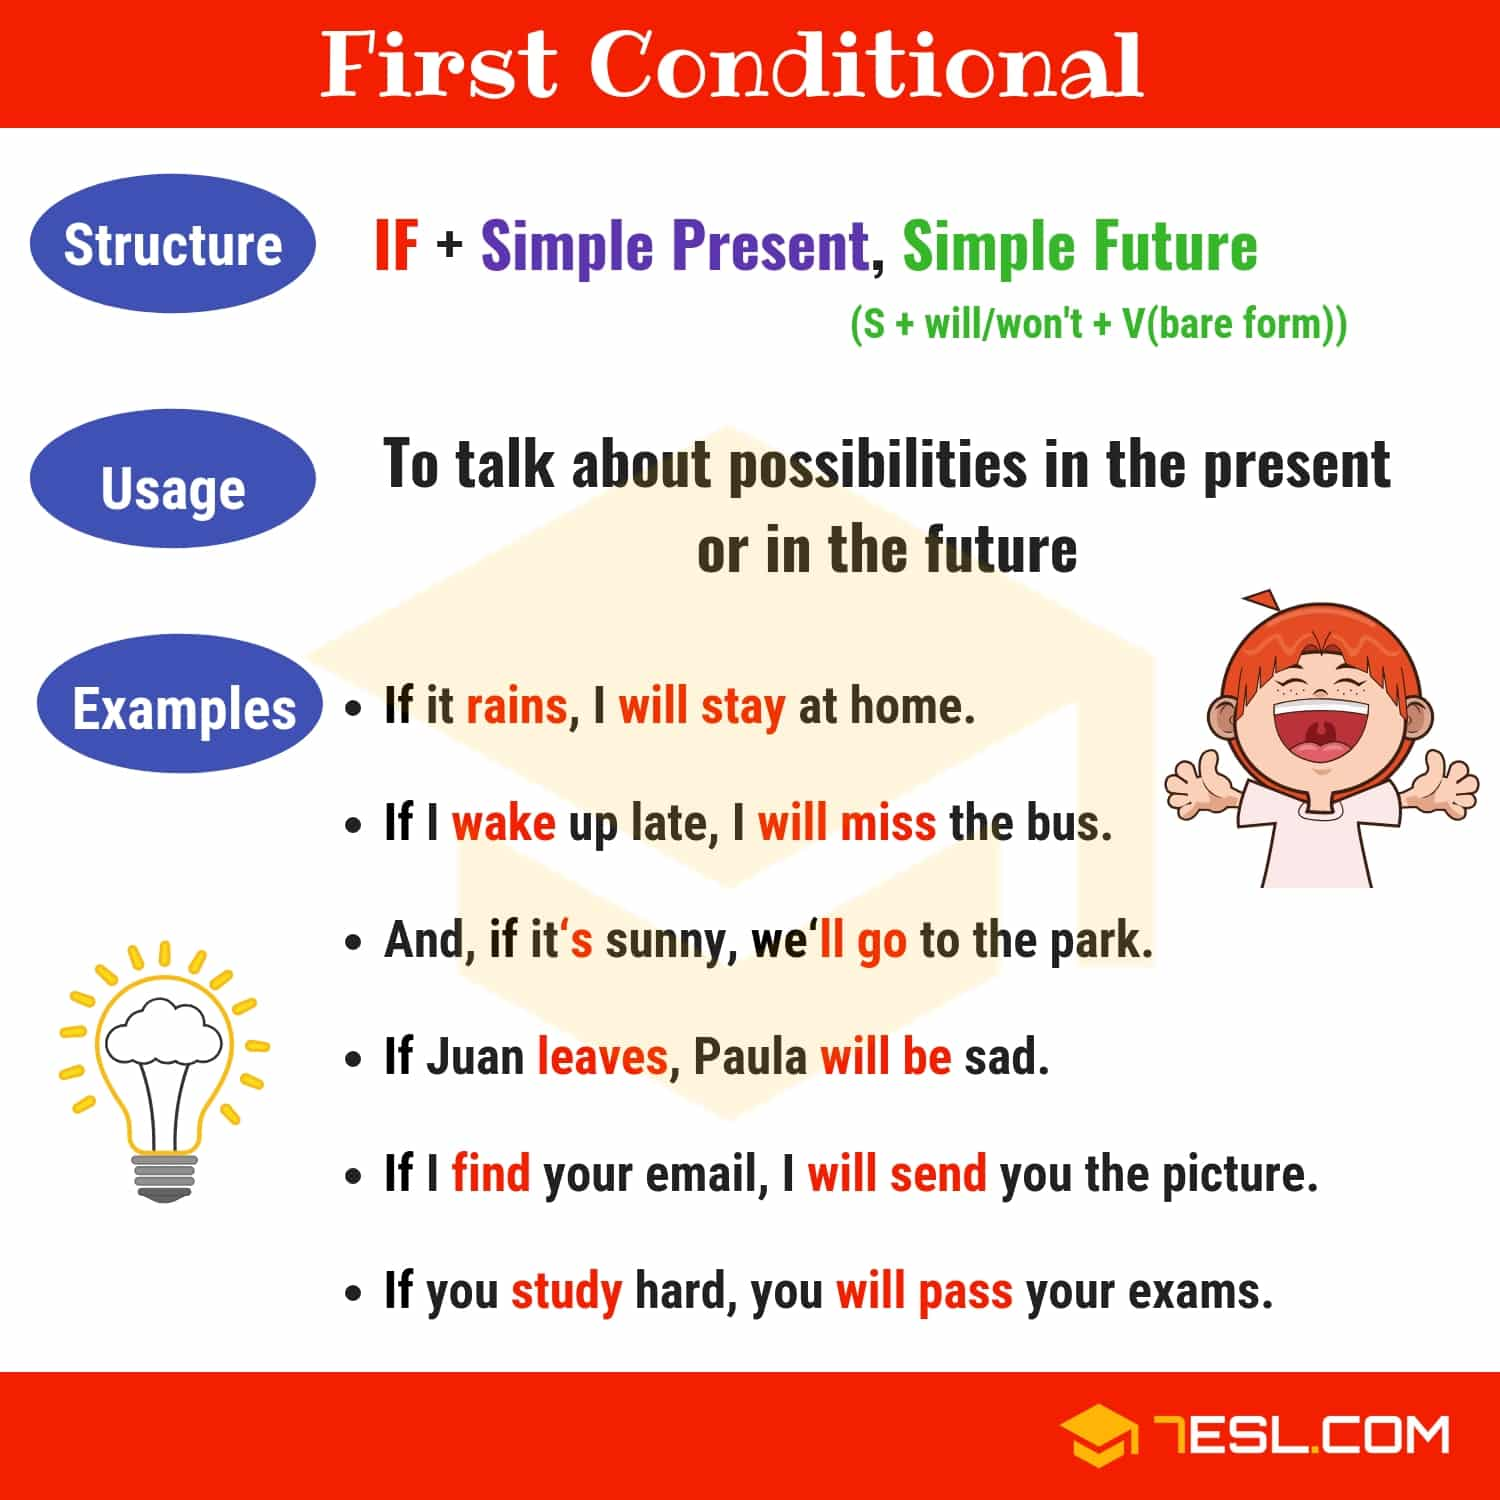 First Conditional Conditional Sentences Type 1 Rules